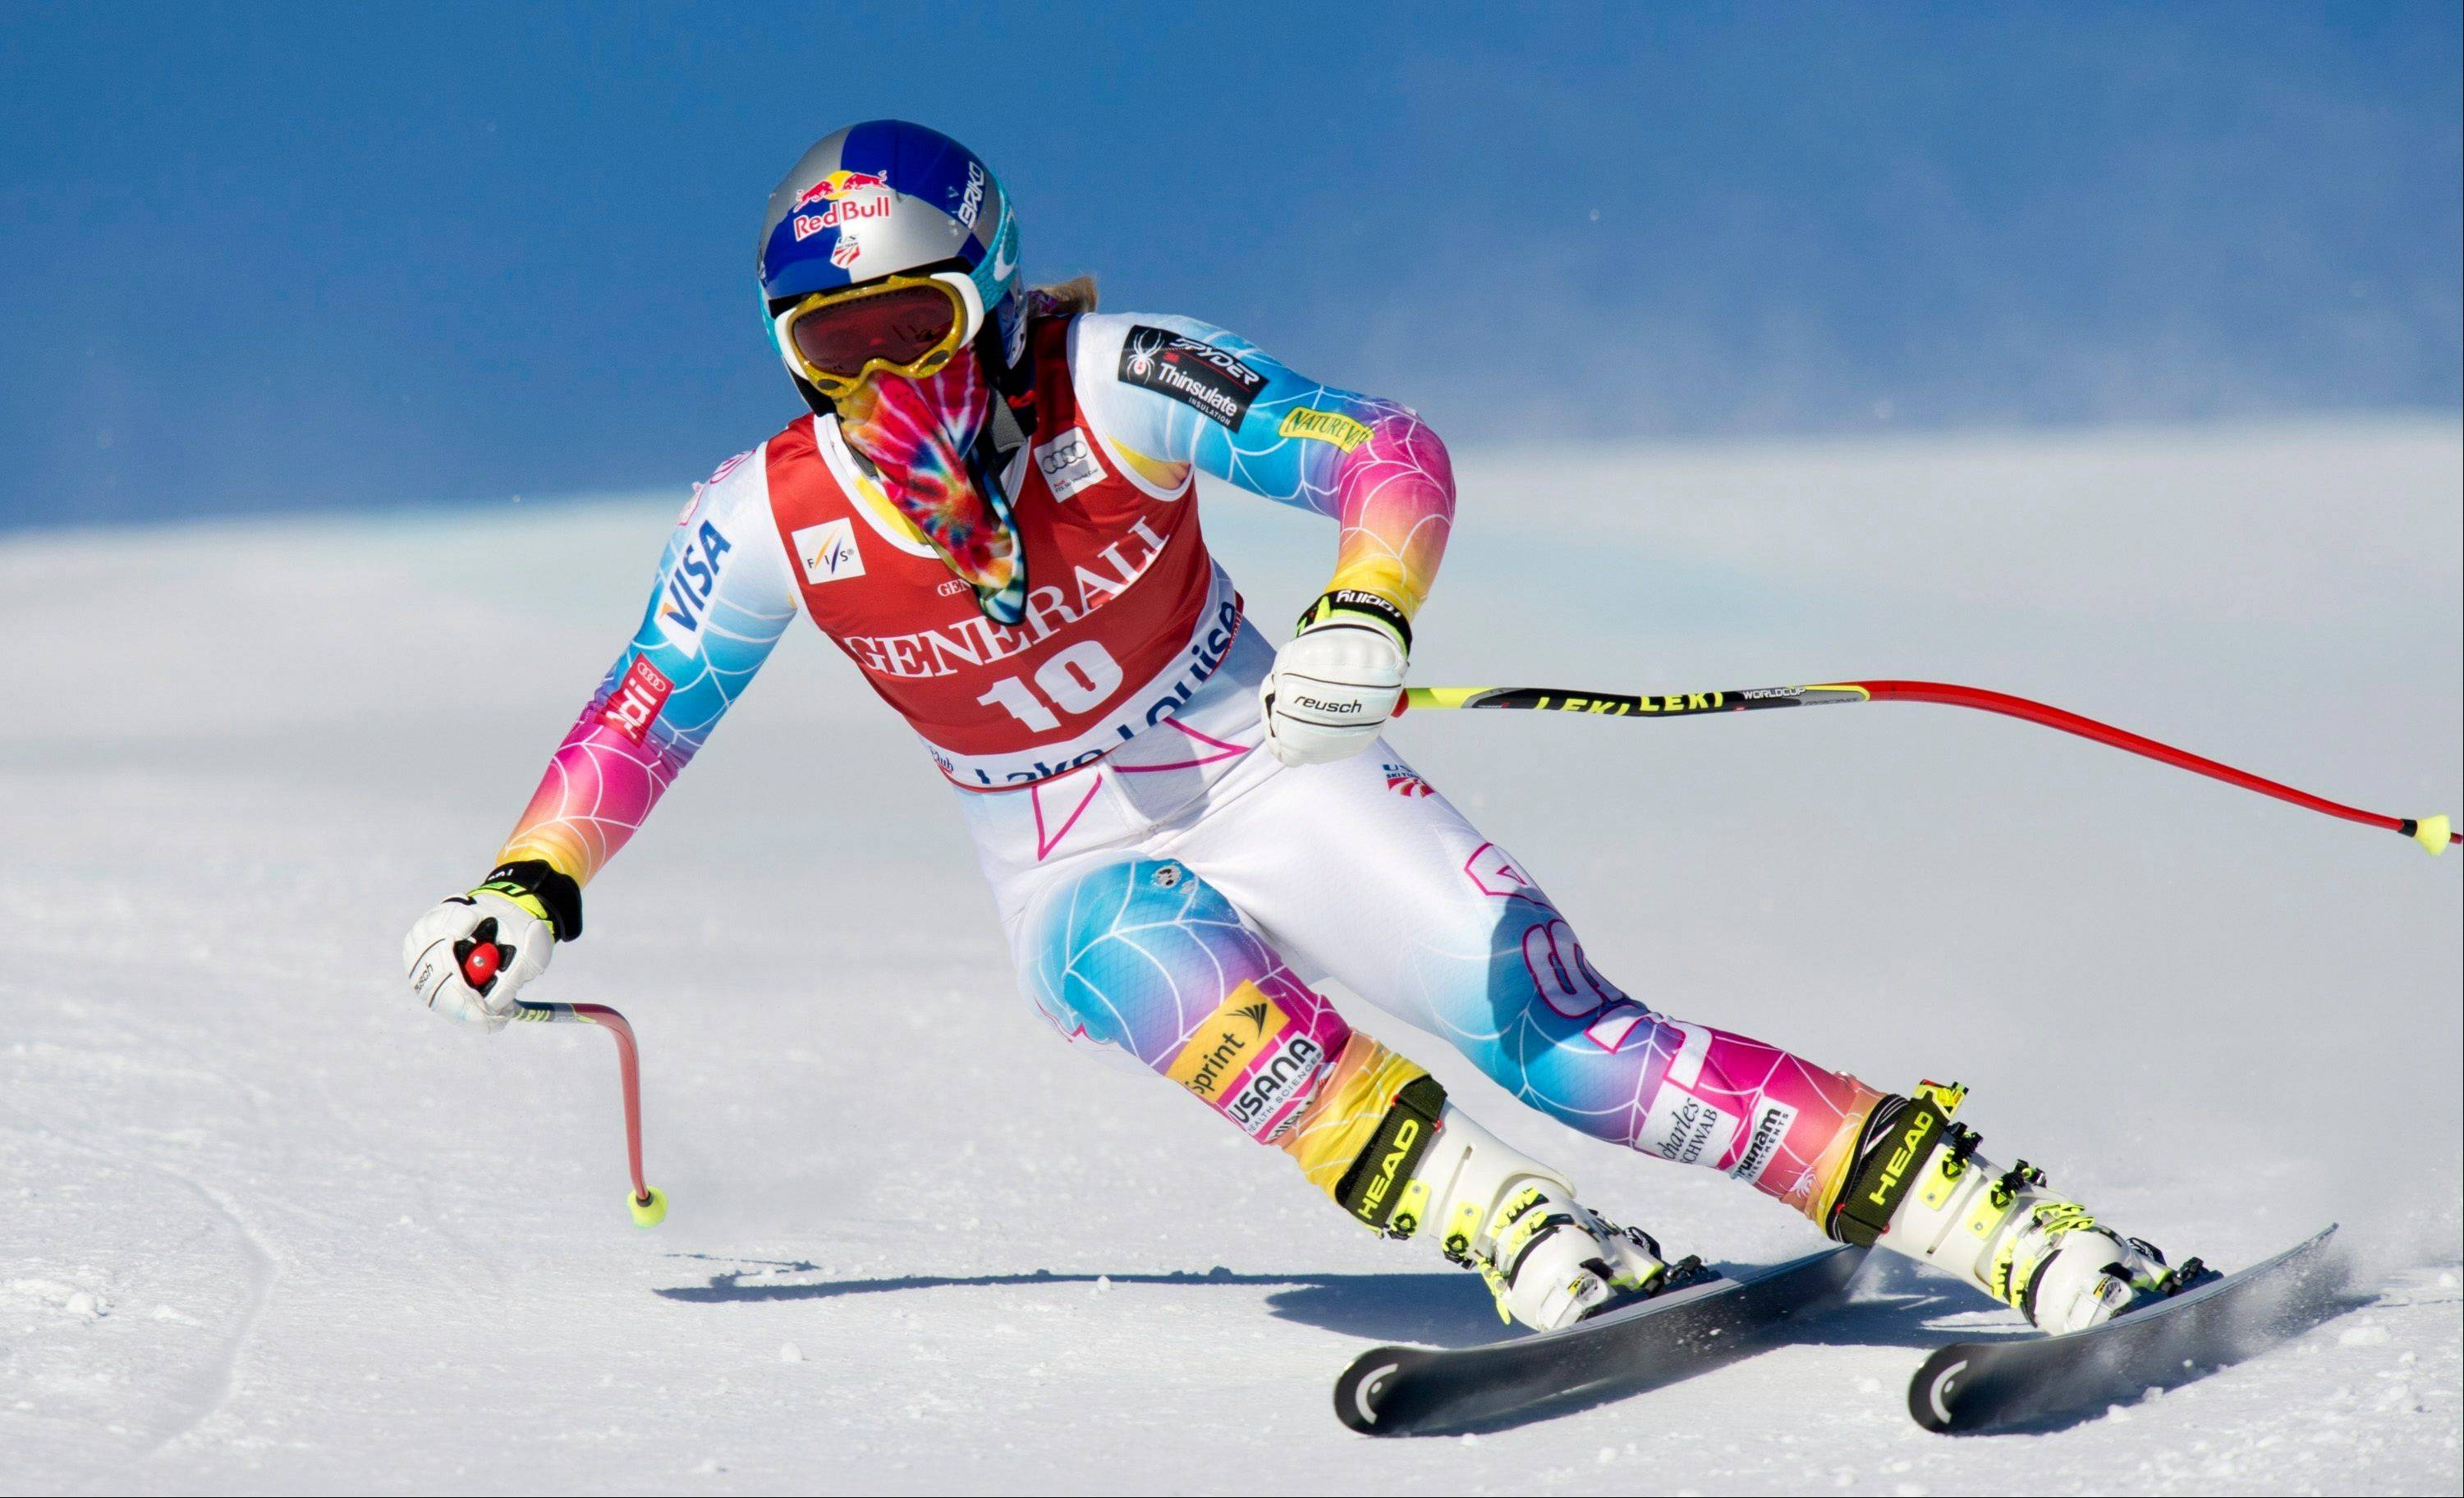 Lindsey Vonn skis during a downhill training run at Lake Louise, Alberta, Canada. Vonn is going to skip the Sochi Olympics because of a right knee injury.